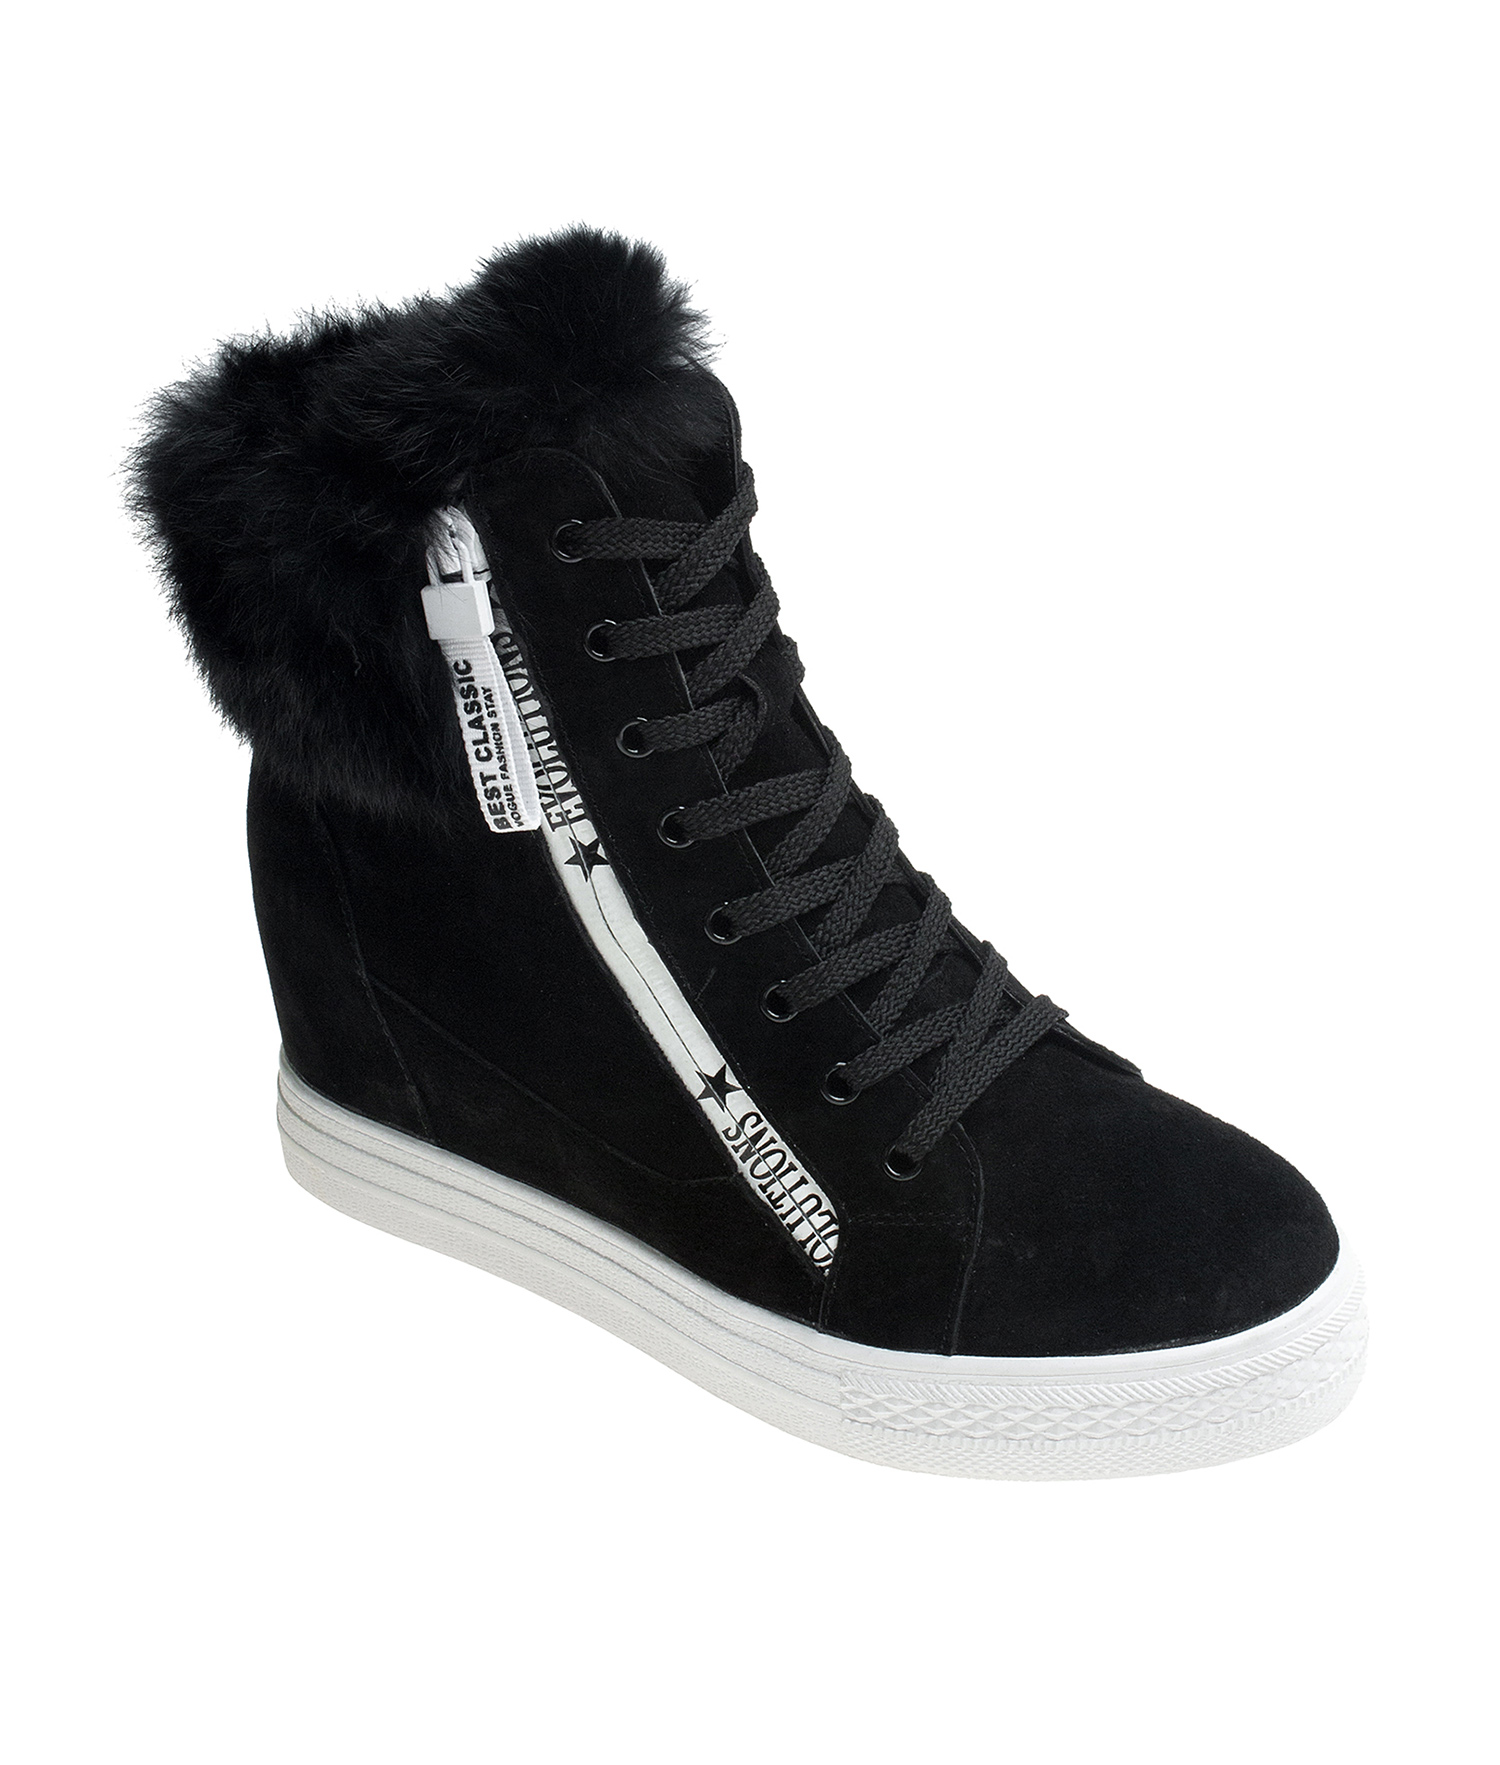 AnnaKastle Womens Fur-Trim Suede Hi Top Sneaker Boots Black